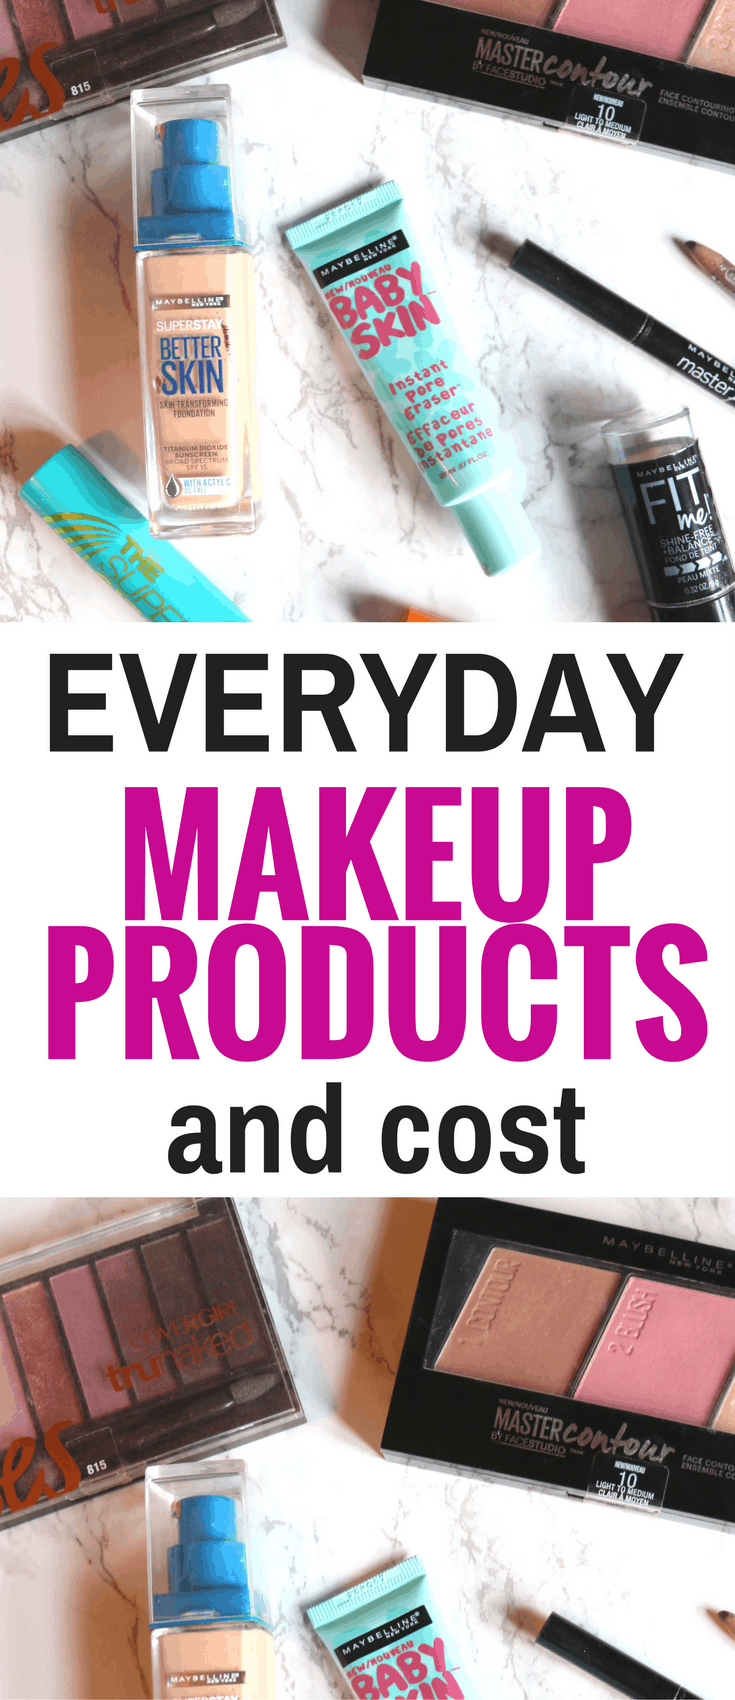 These everyday makeup products are affordable and easy to use. Plus they're perfect for teens. Keep reading to see the total and daily cost of these go-to drugstore beauty and makeup products.